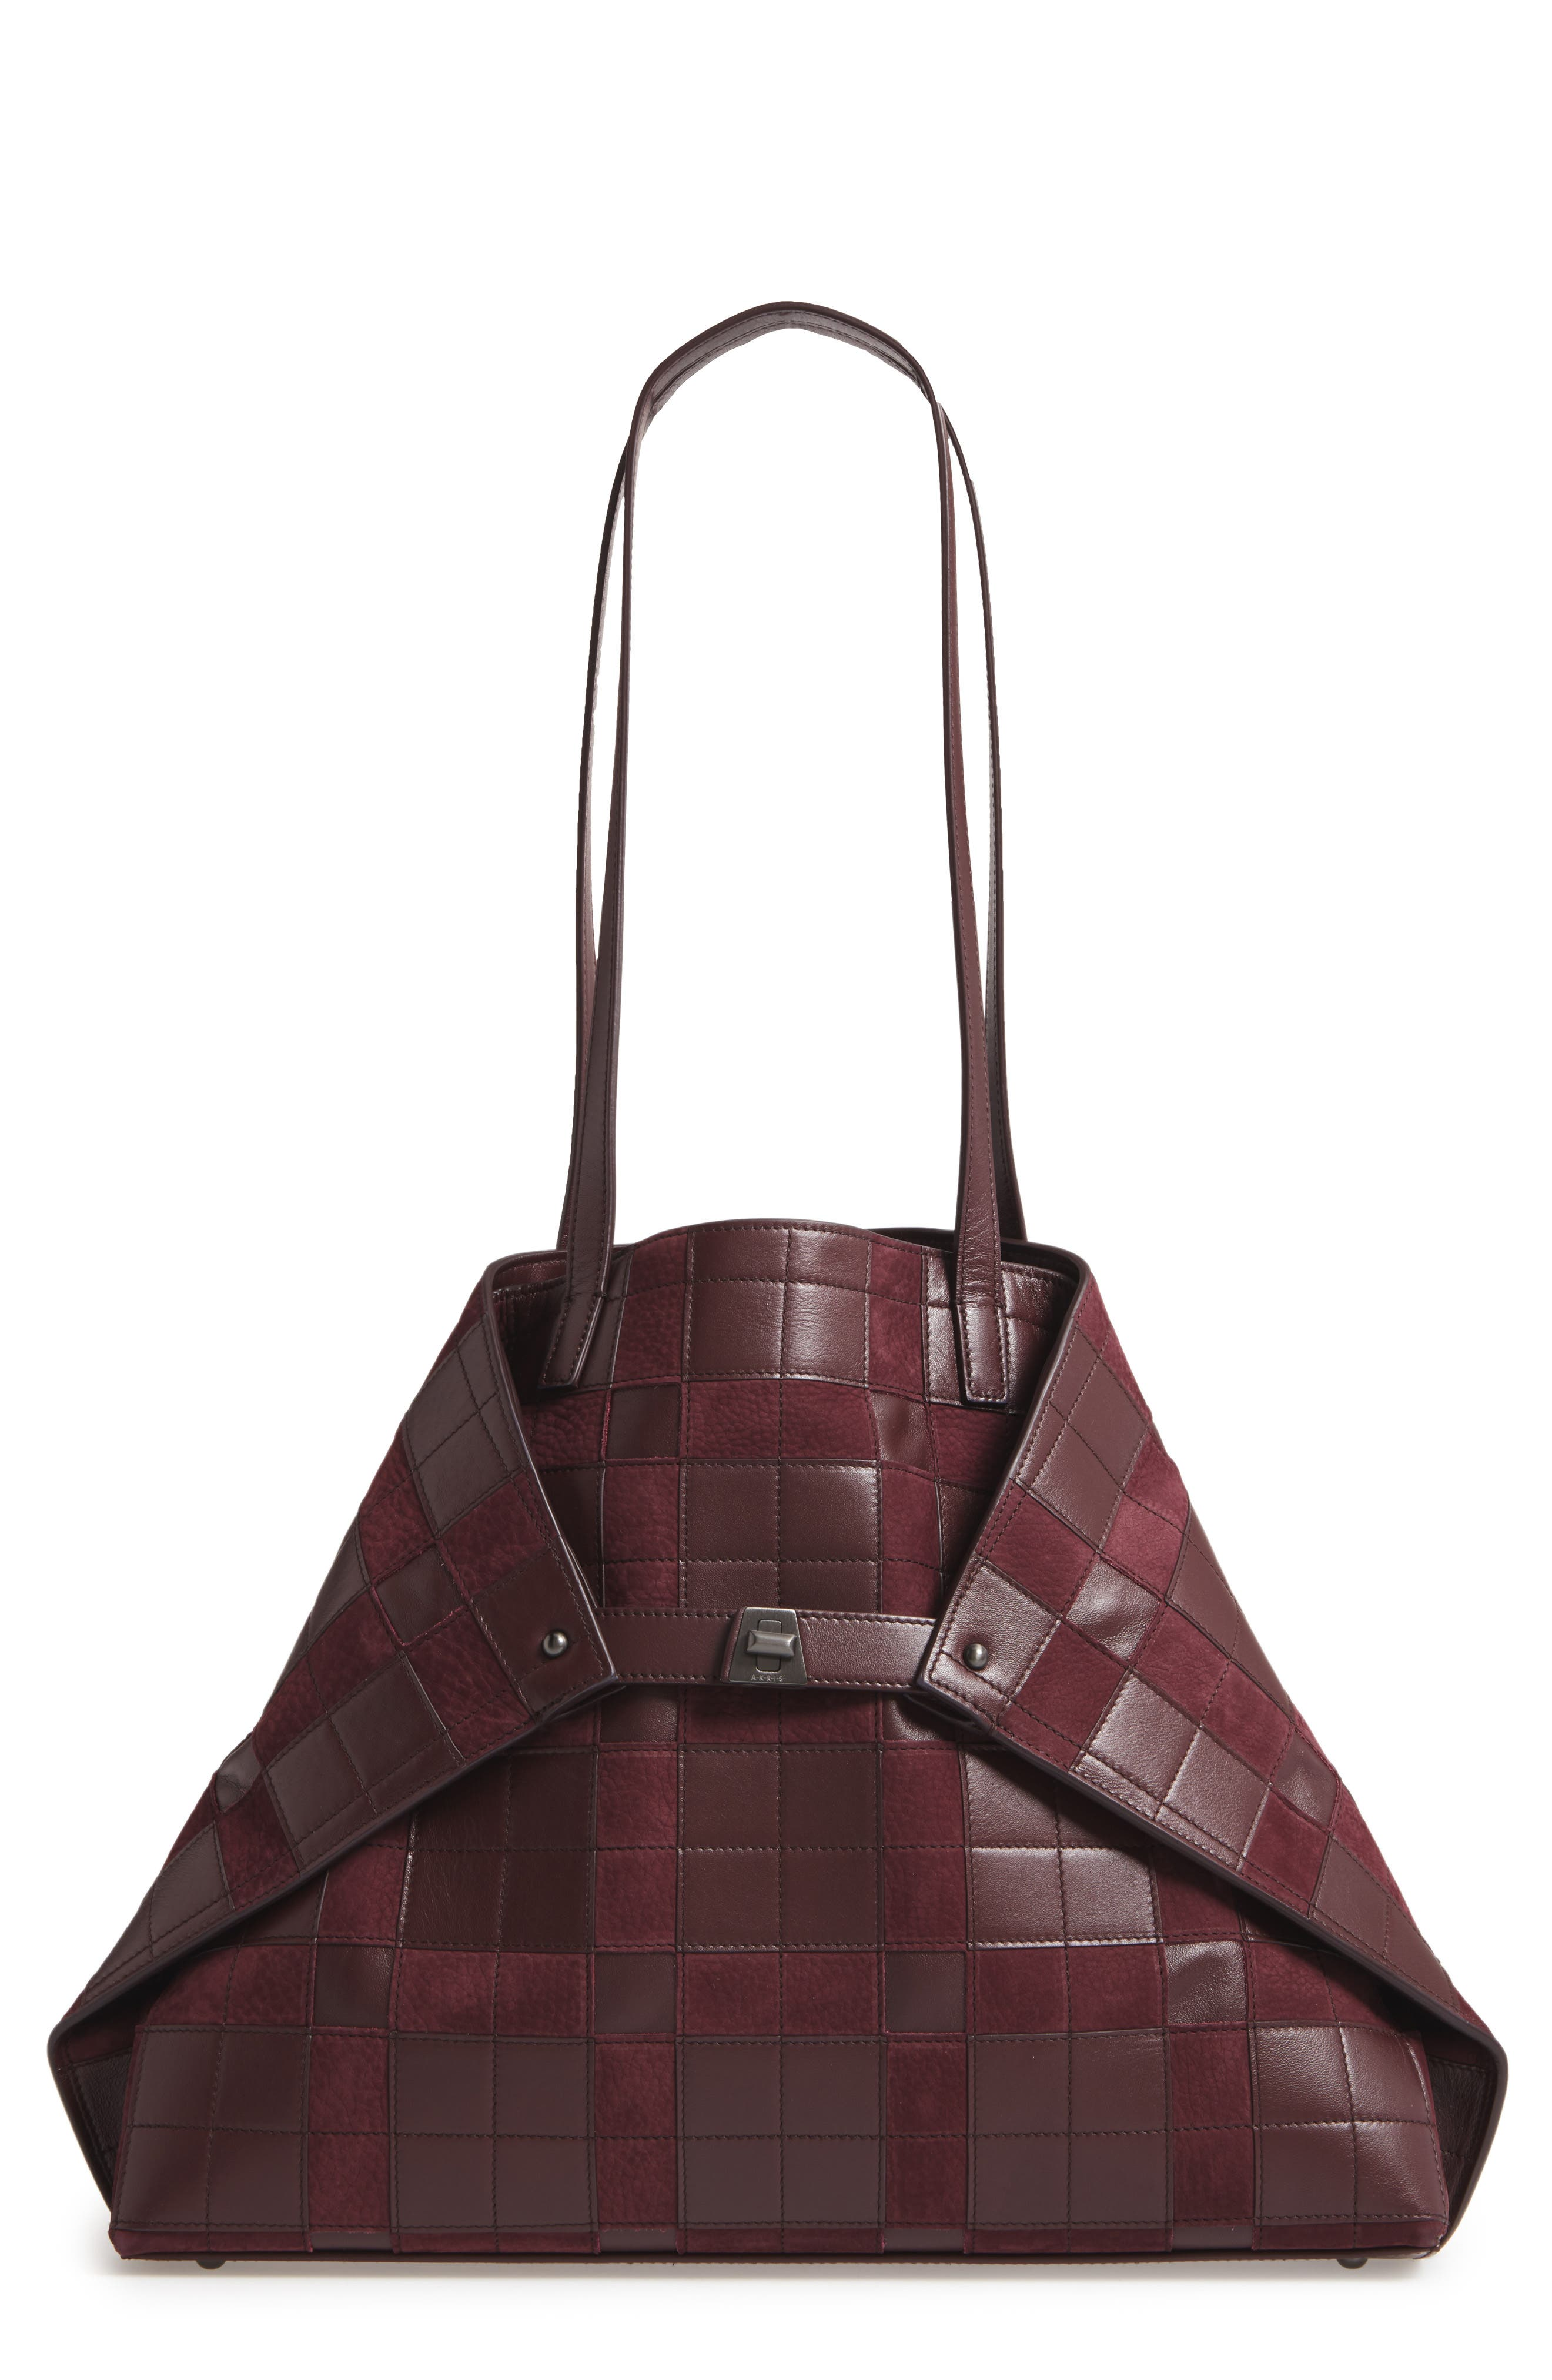 Medium AI Leather Shoulder Tote,                         Main,                         color, Burgundy